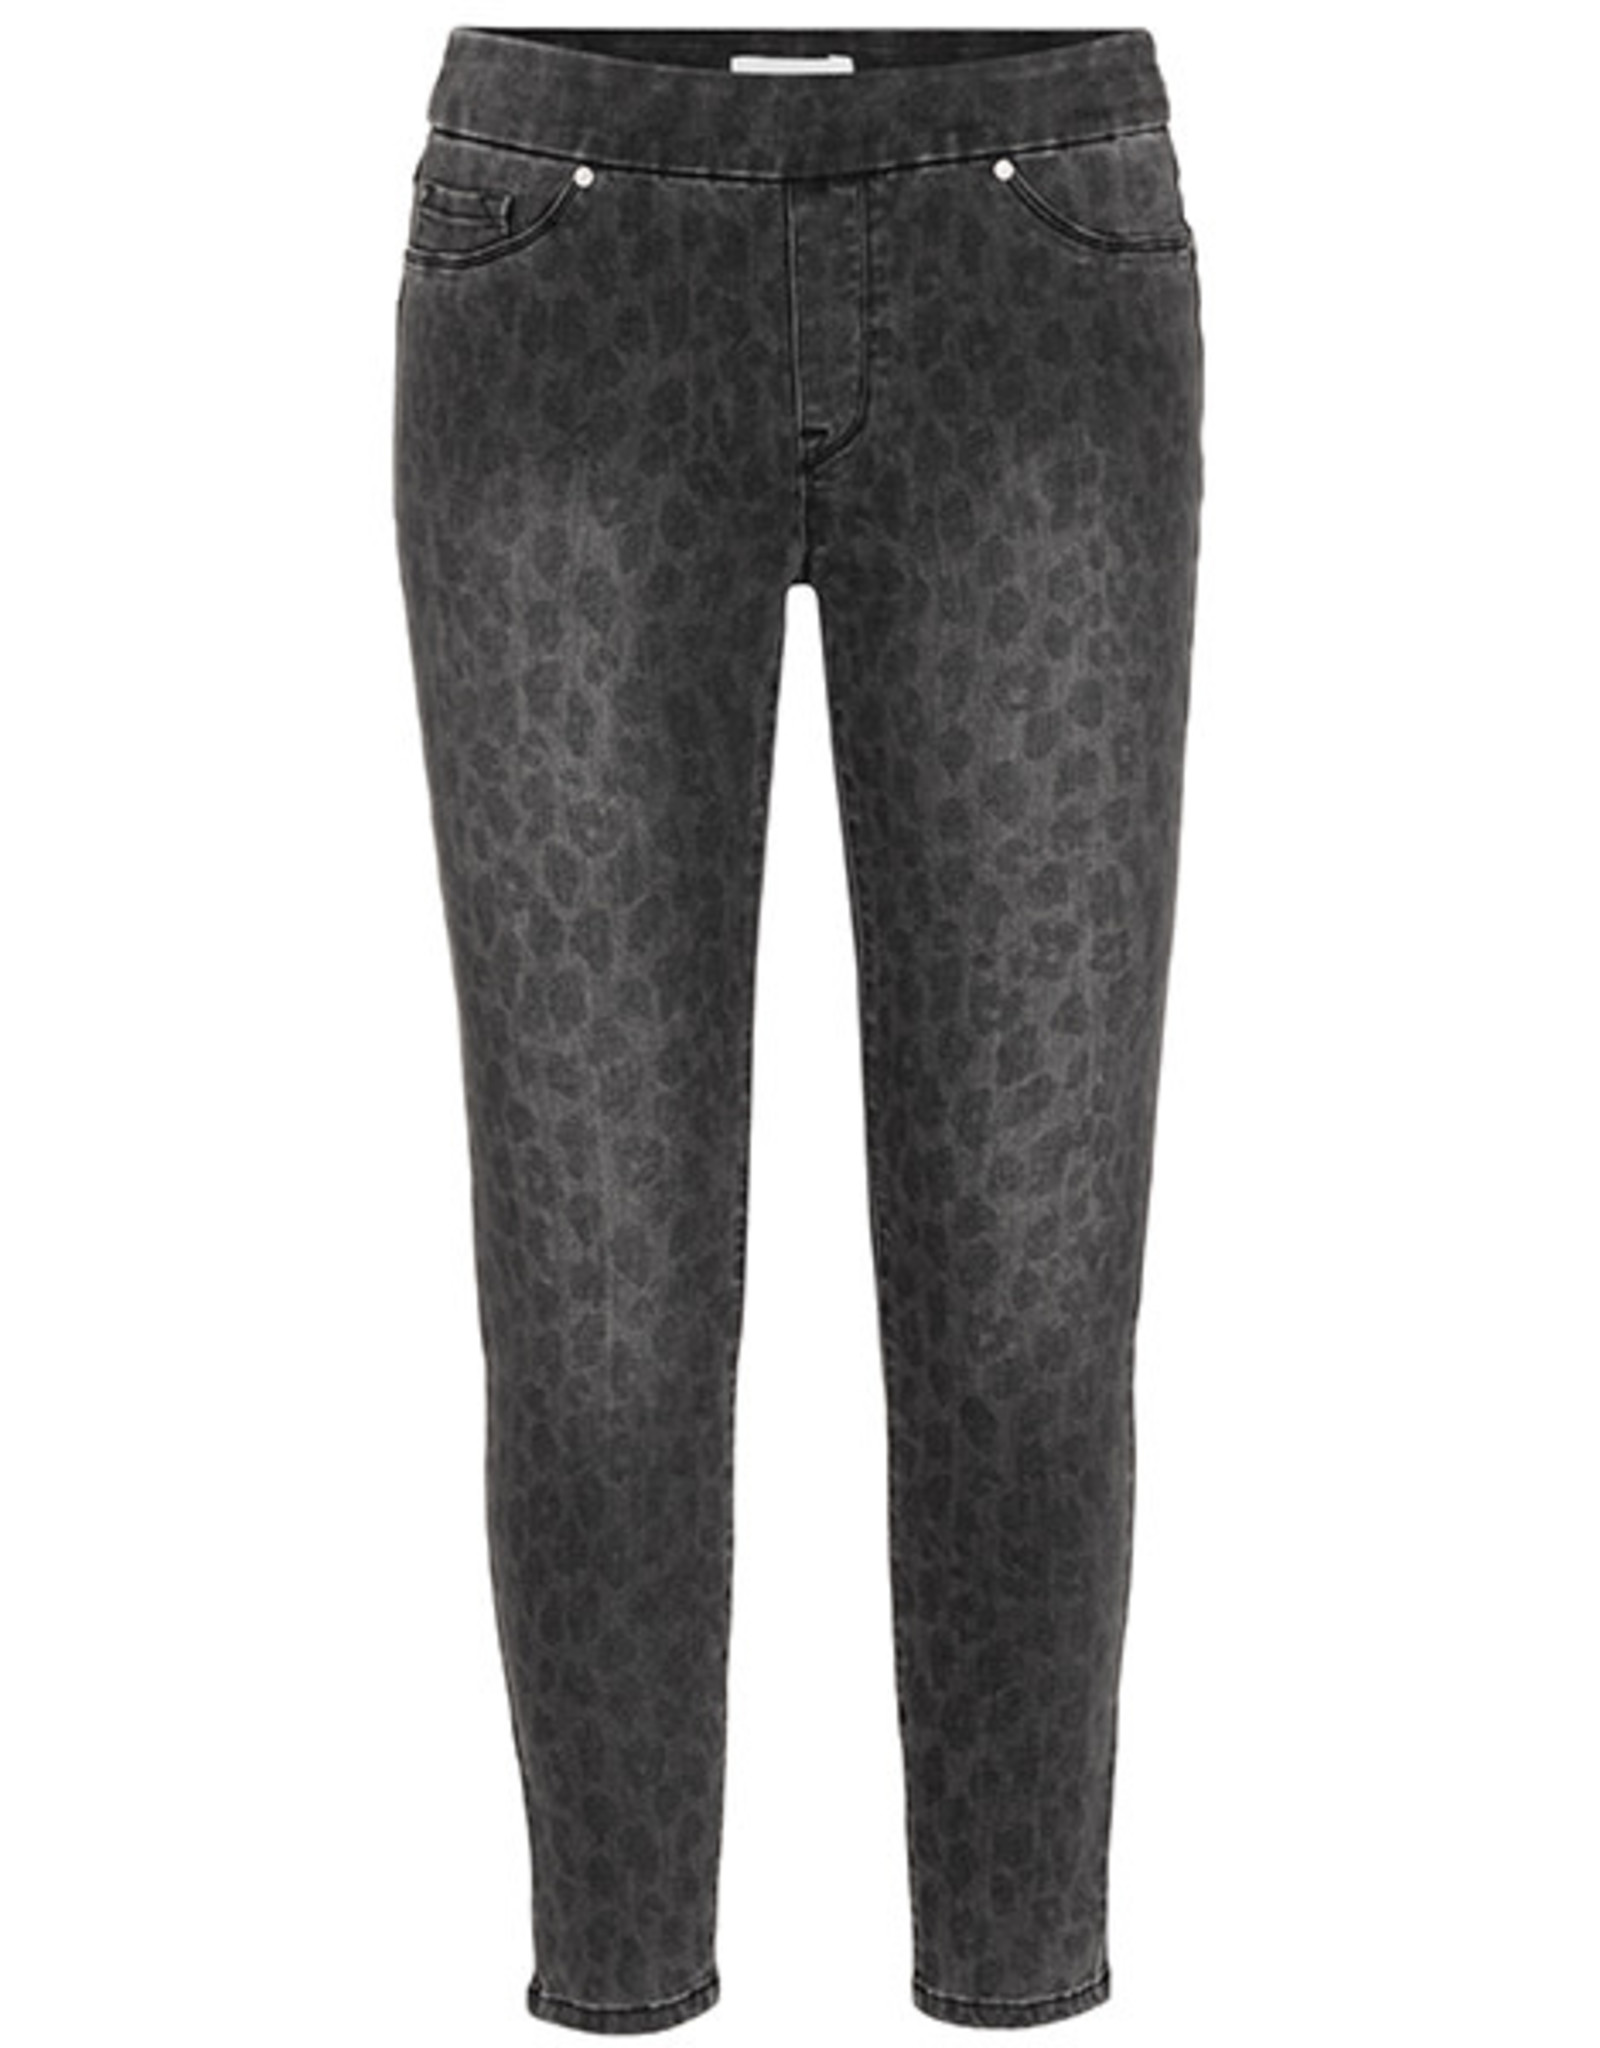 Tribal Leopard Pull-on Denim Ankle Jegging